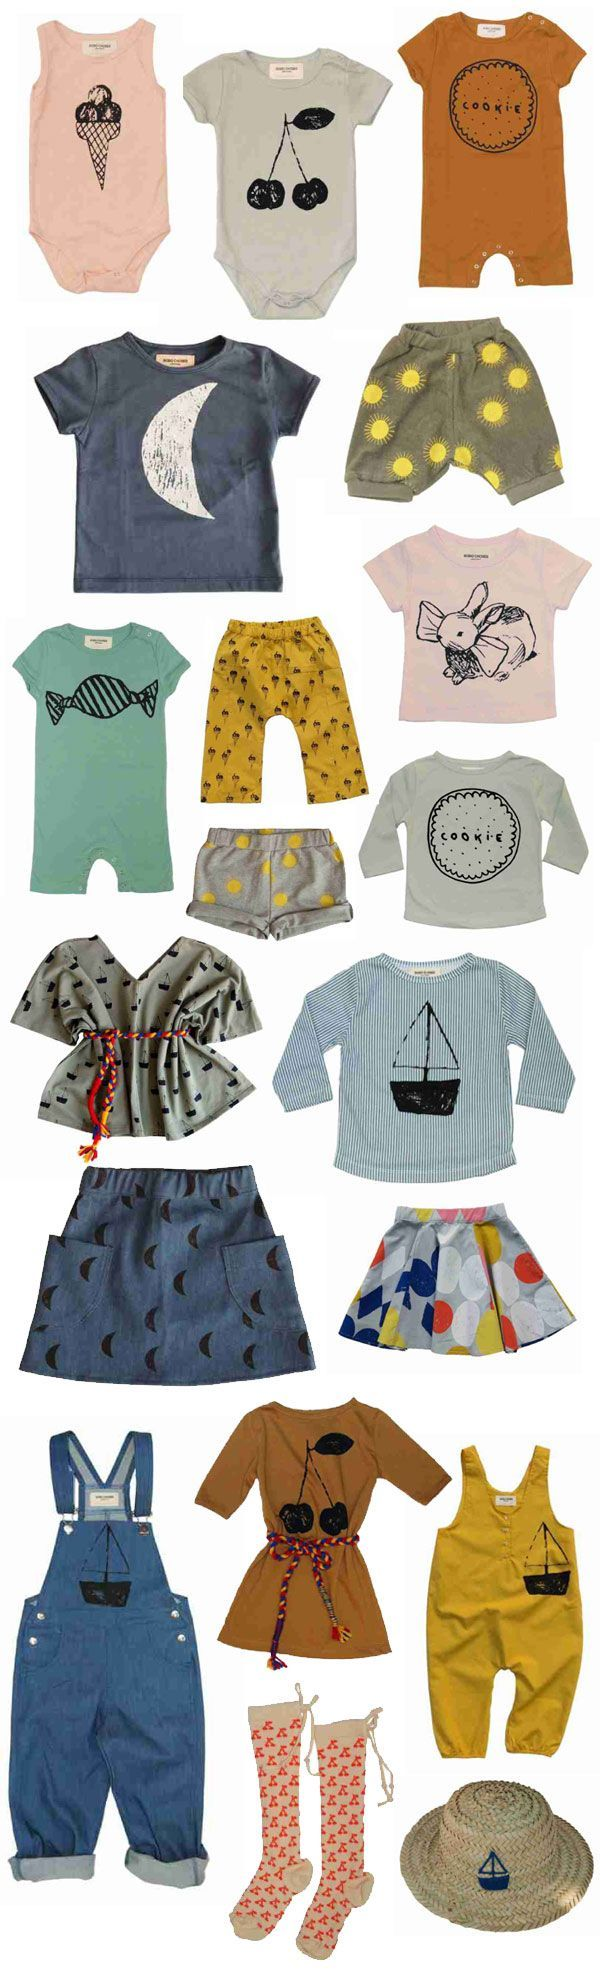 best images about baby on pinterest organic baby rompers and